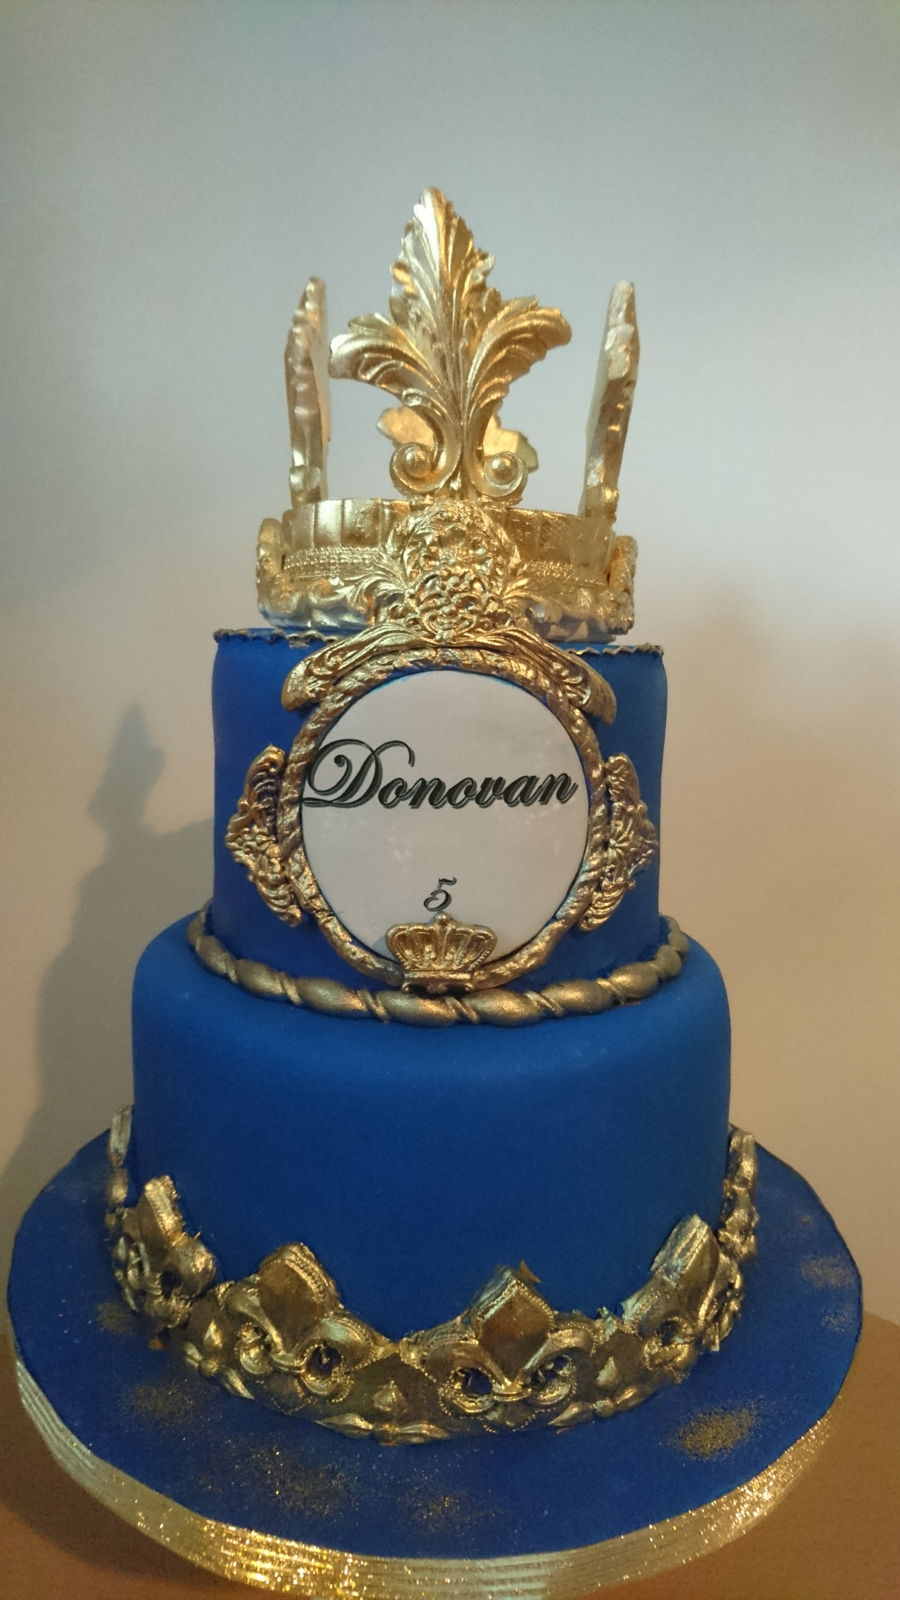 blue gold wedding cakes donovan cake royal cake blue and gold cakecentral 11987